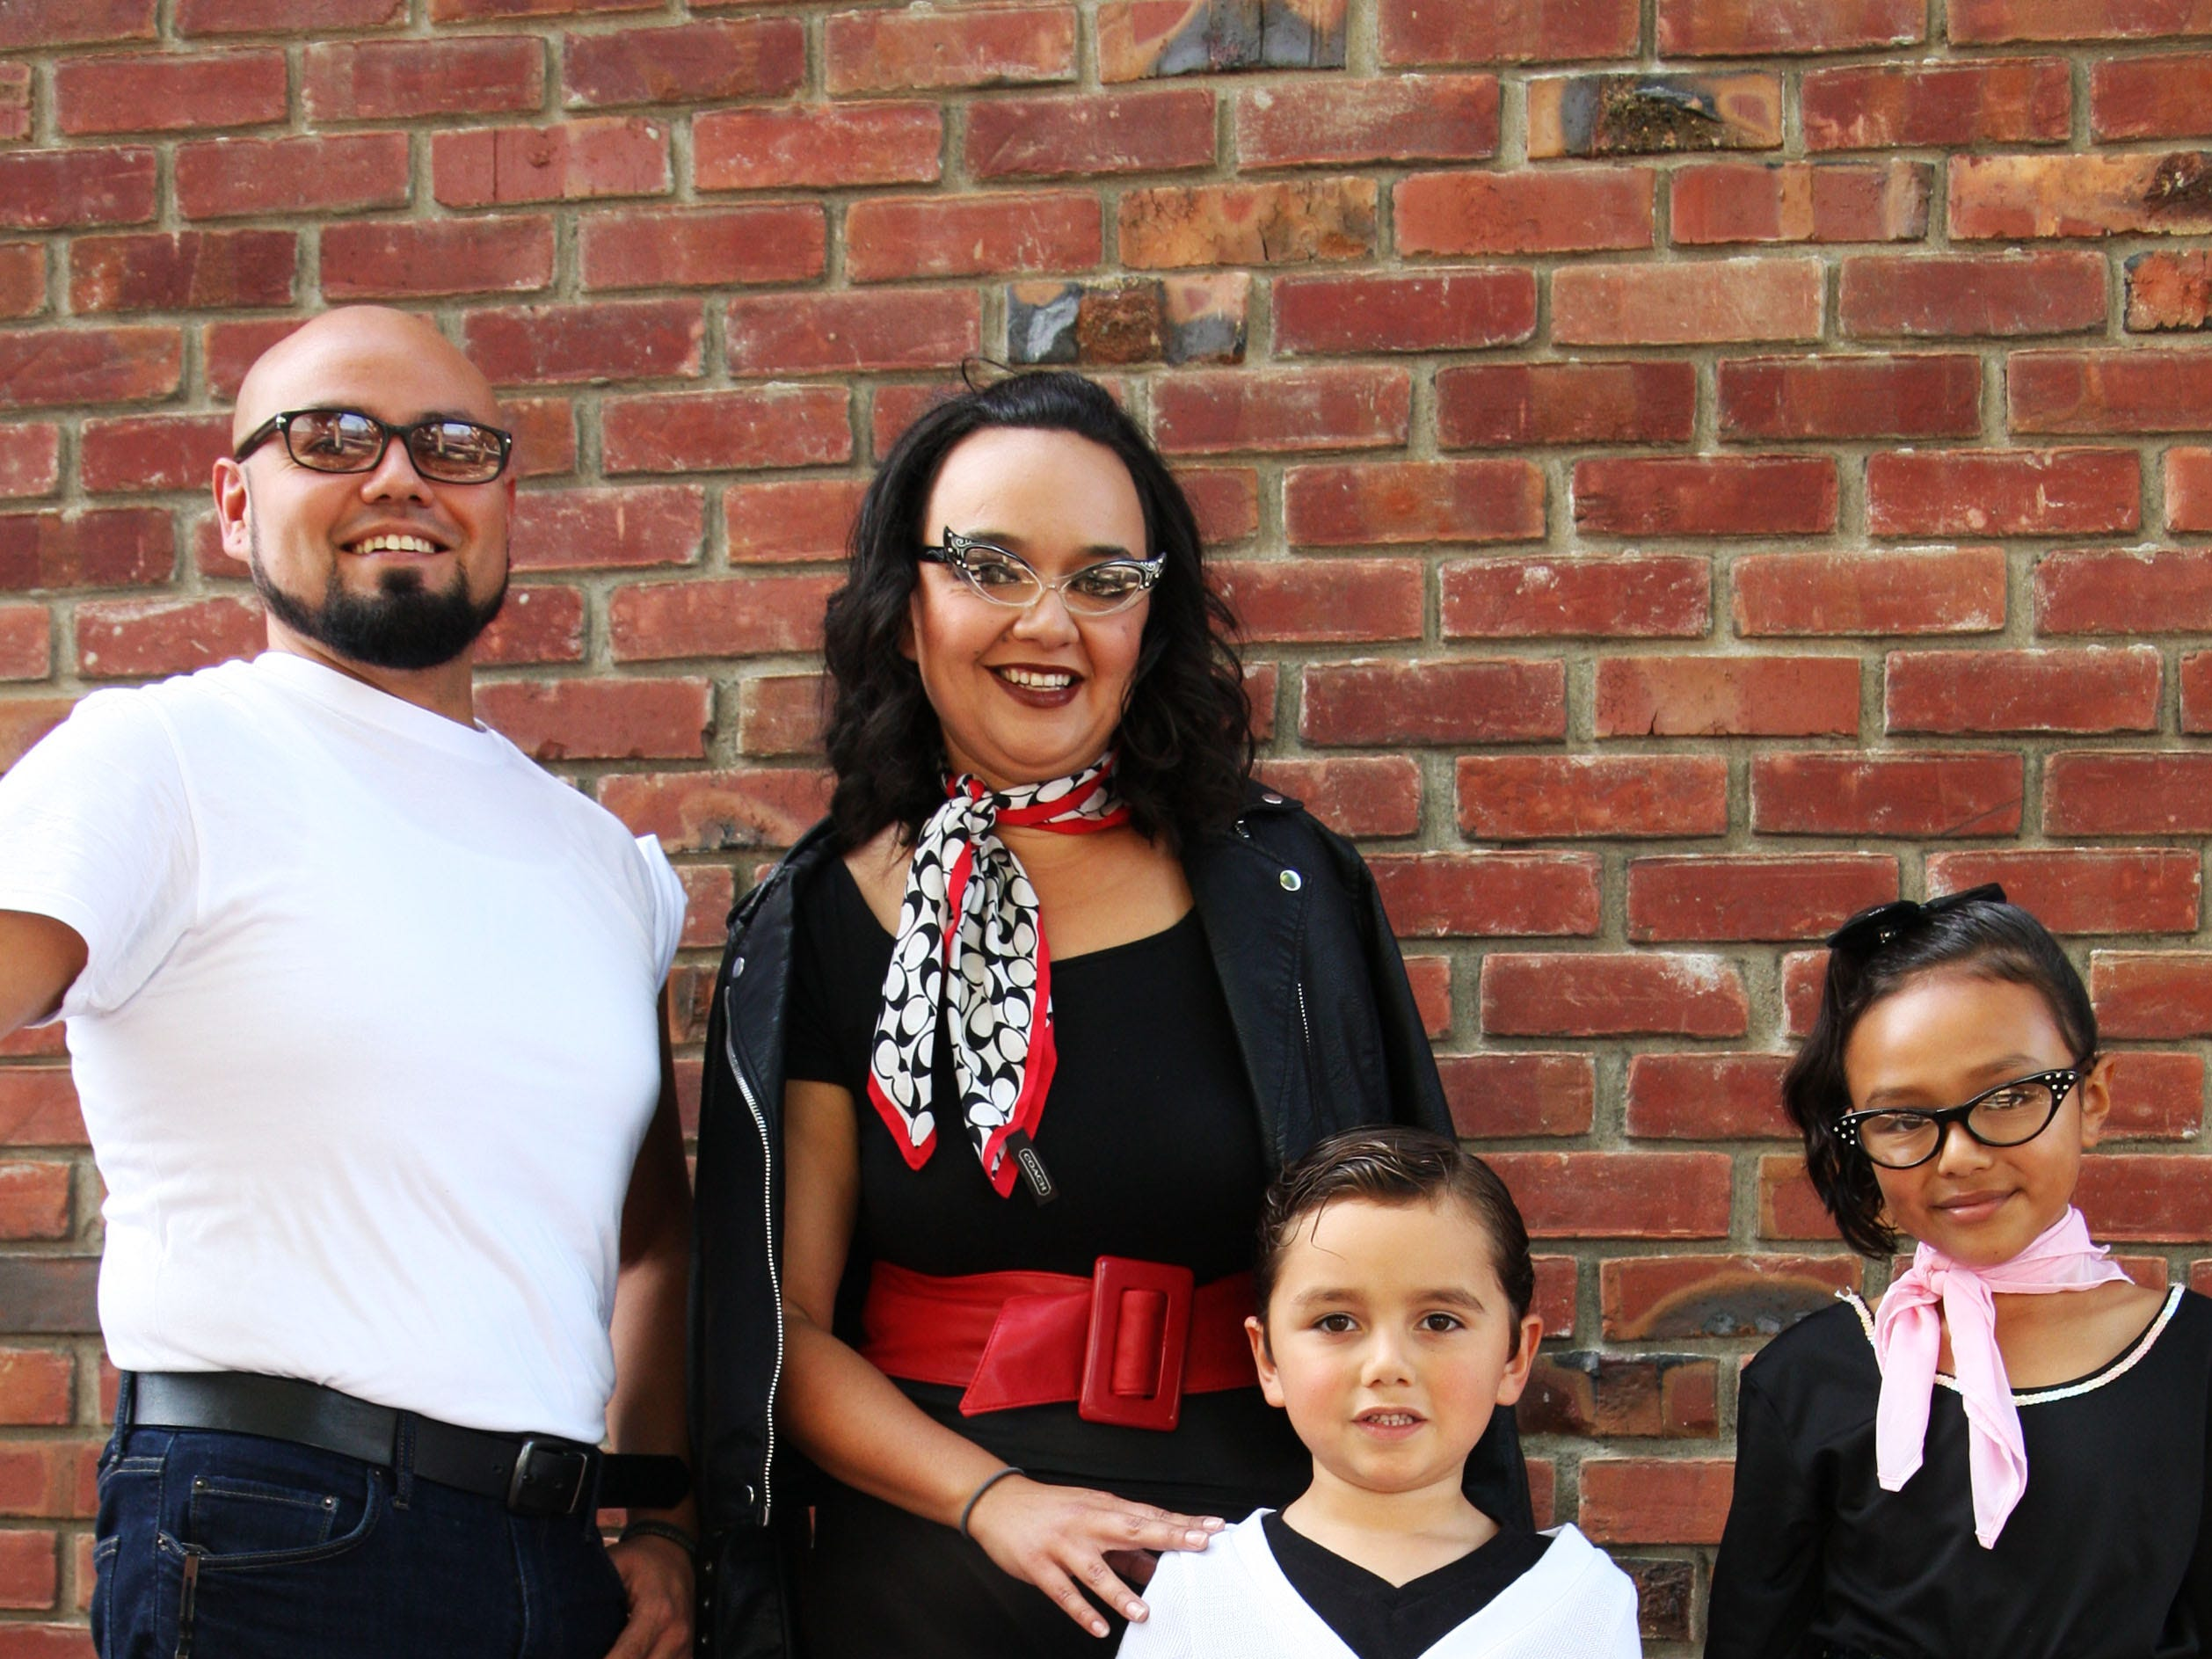 """The Celaya Vazquez family (Alfredo and Jackie with their children Savinah, Nicholas and Tadeo) go Trick-or-Treating in Oldtown Salinas Saturday. According to Nicholas, they are dressed as """"the fifties!"""""""